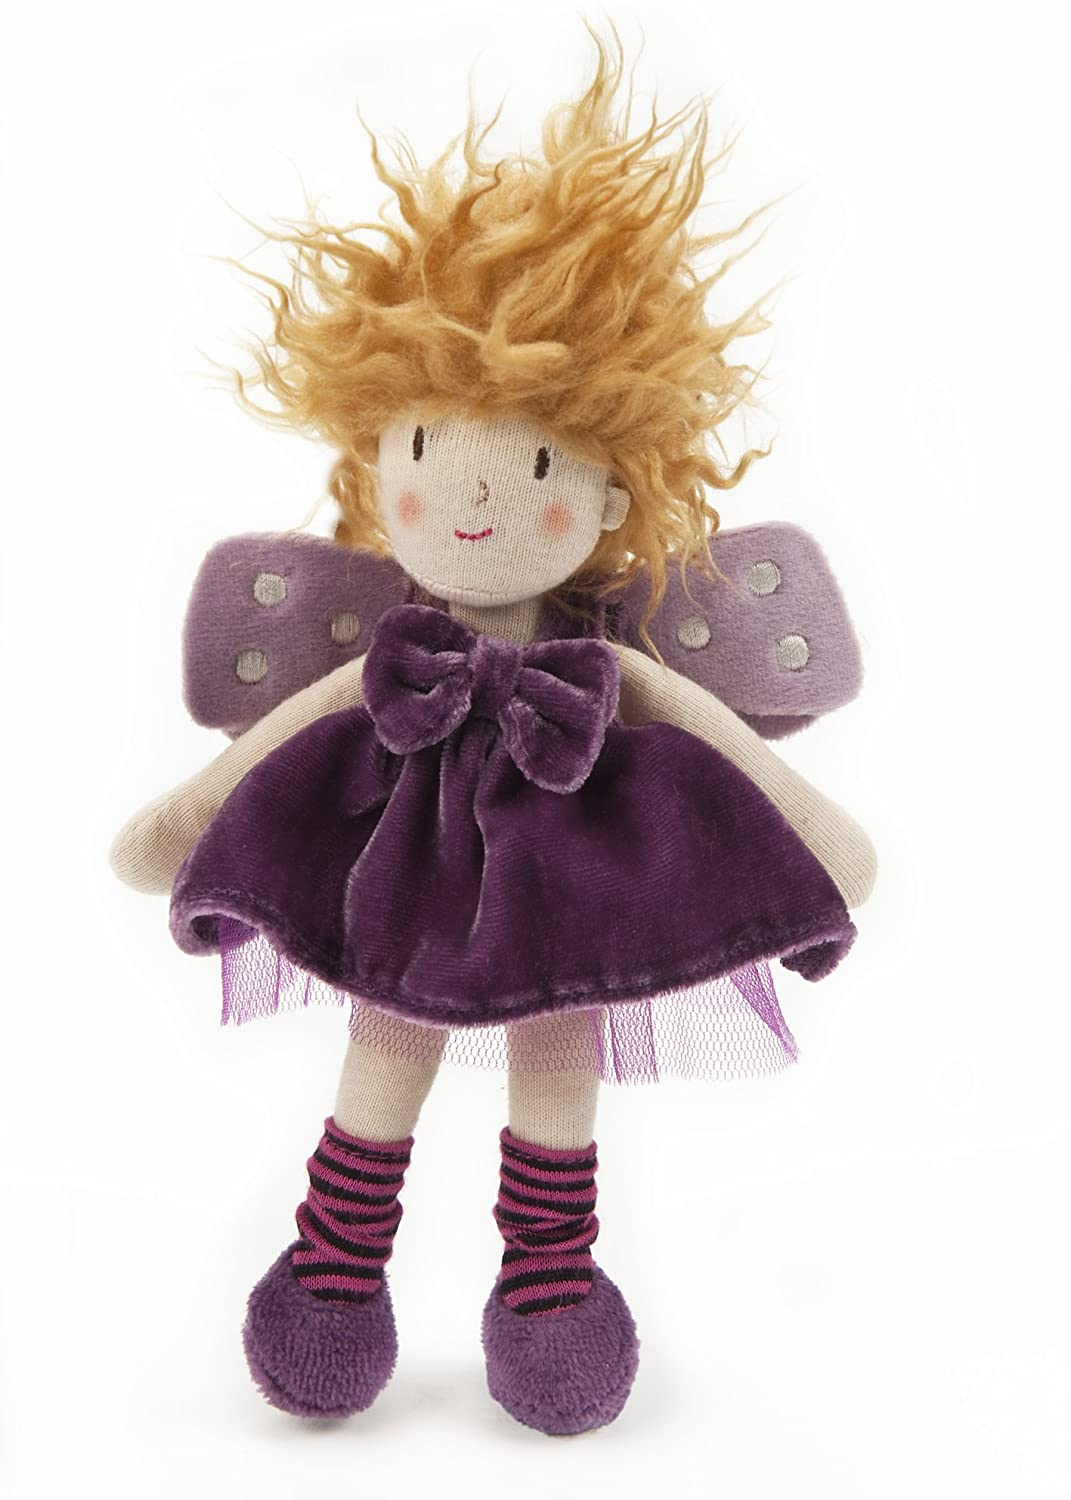 fairy doll best toys for 1 year old girls